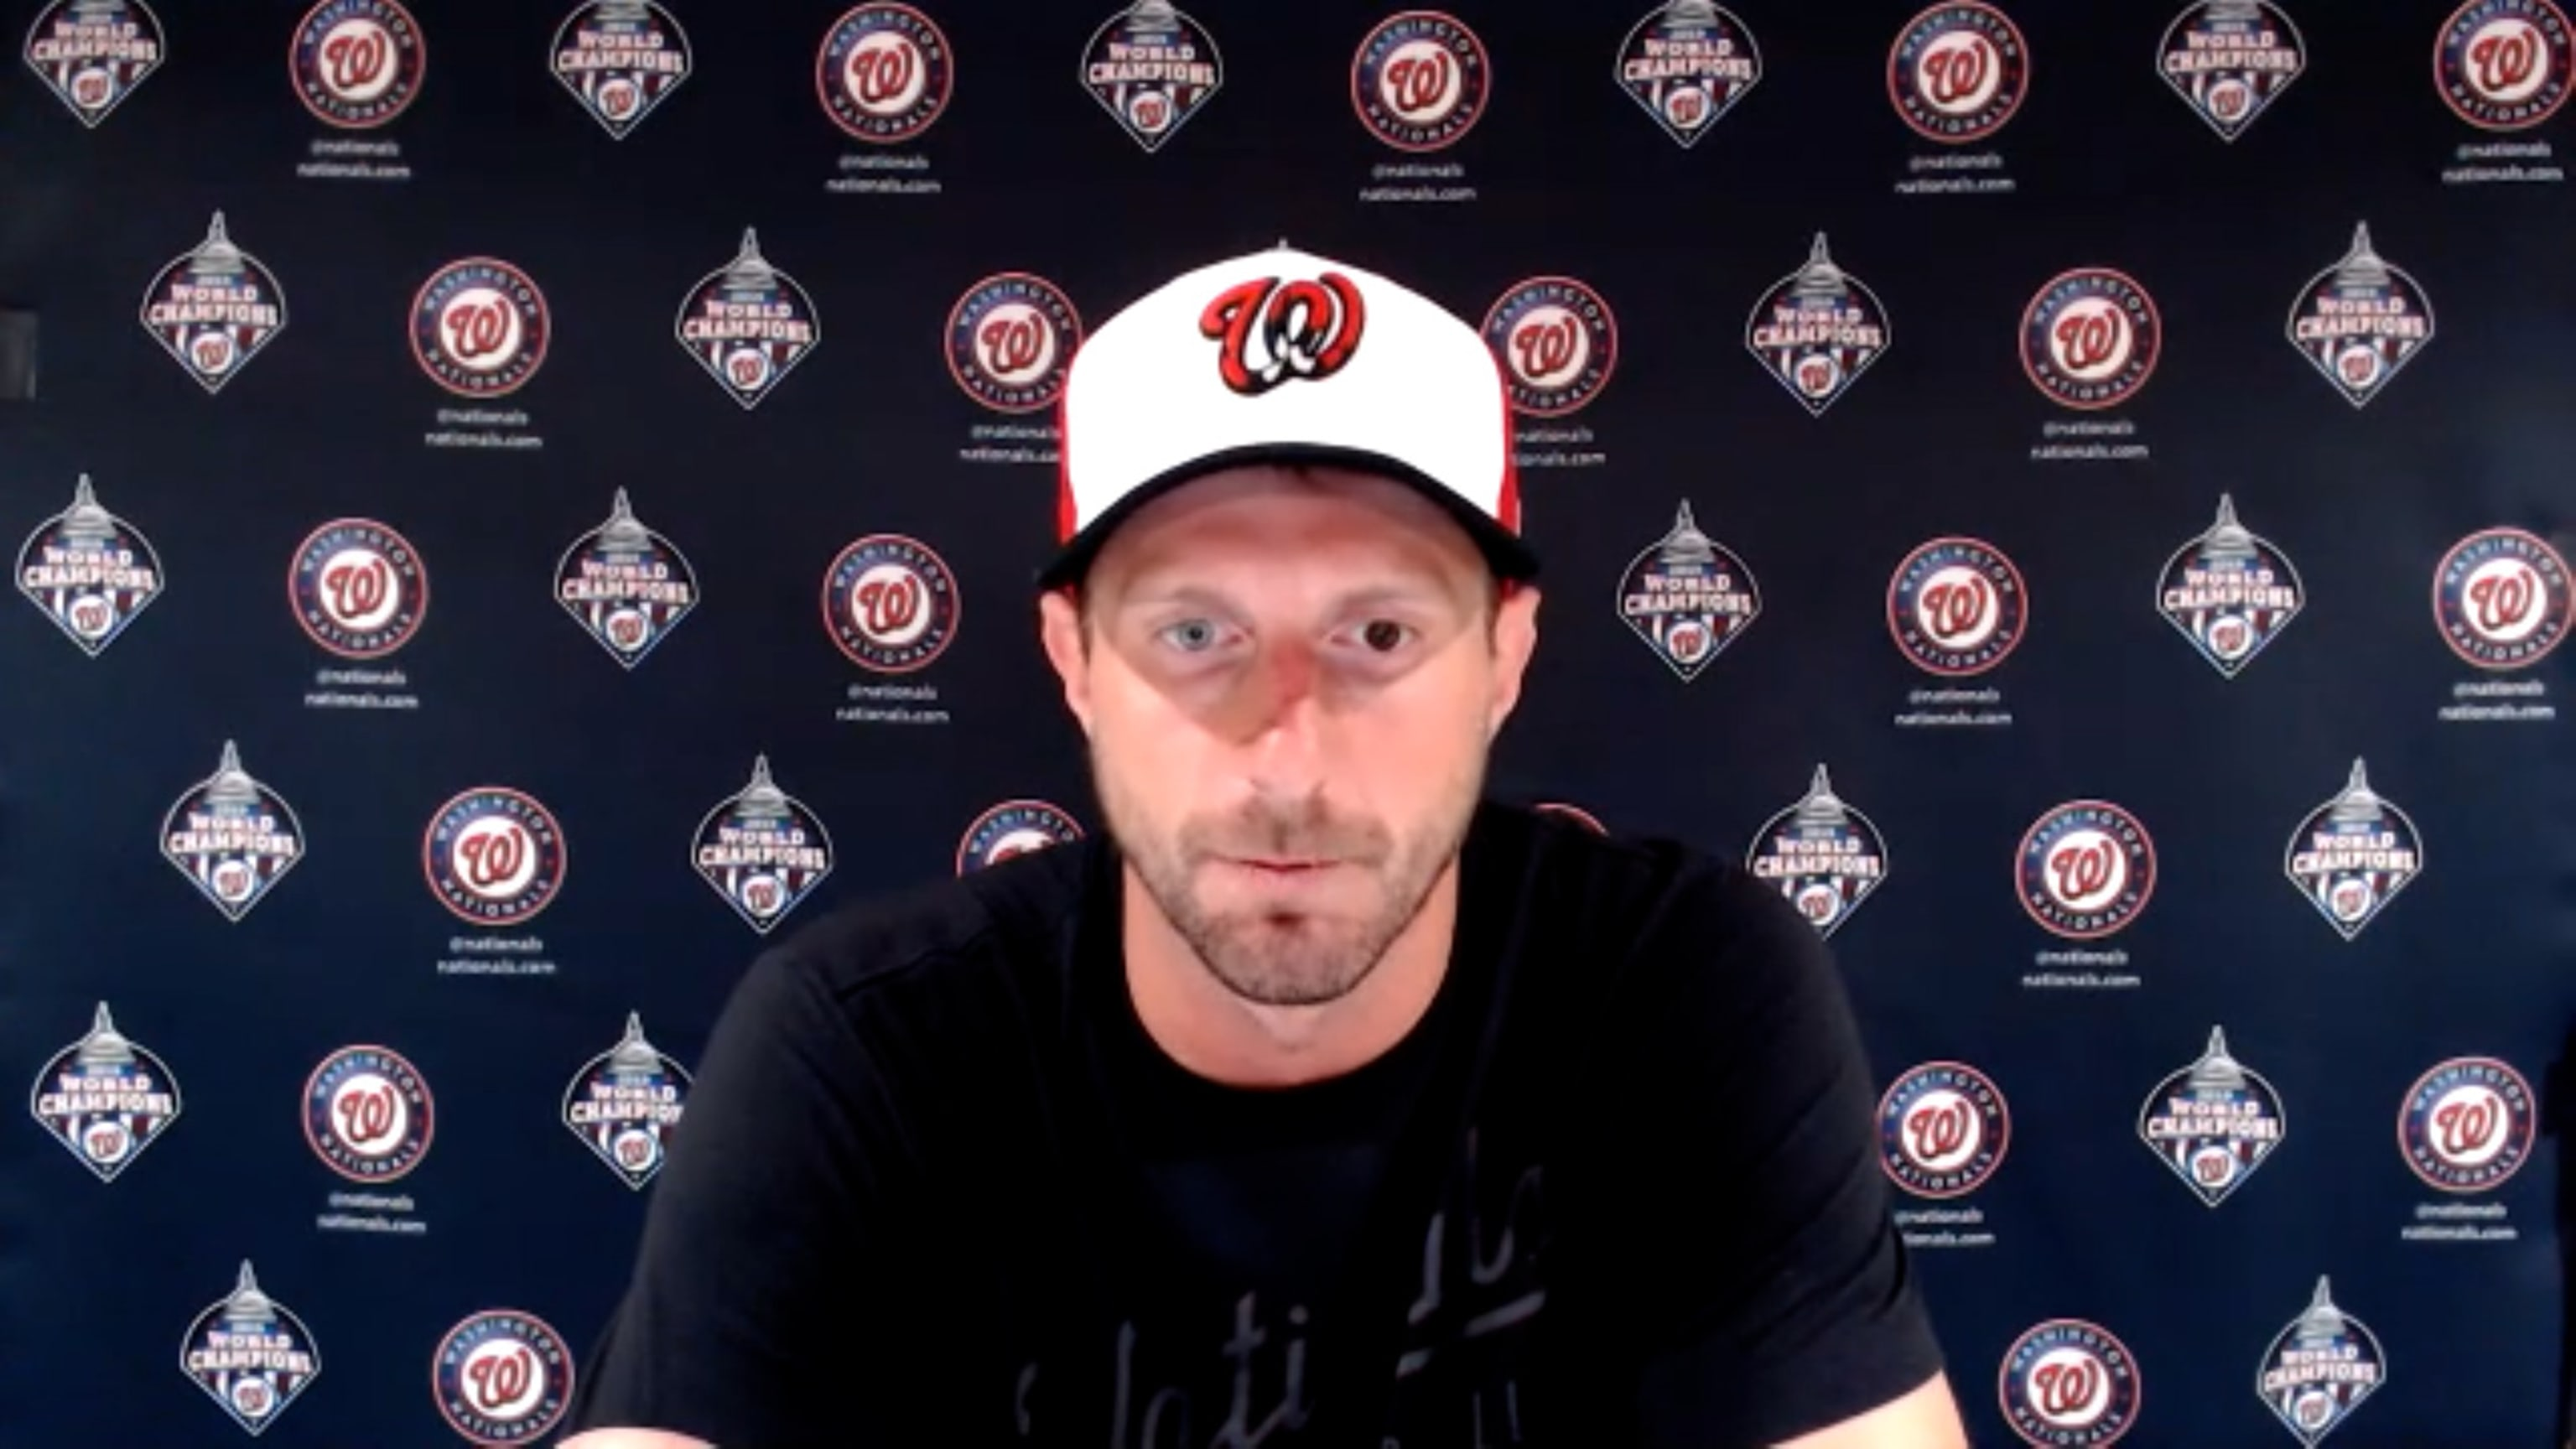 Max Scherzer during a press conference announces he'll start opening day for the Nationals.